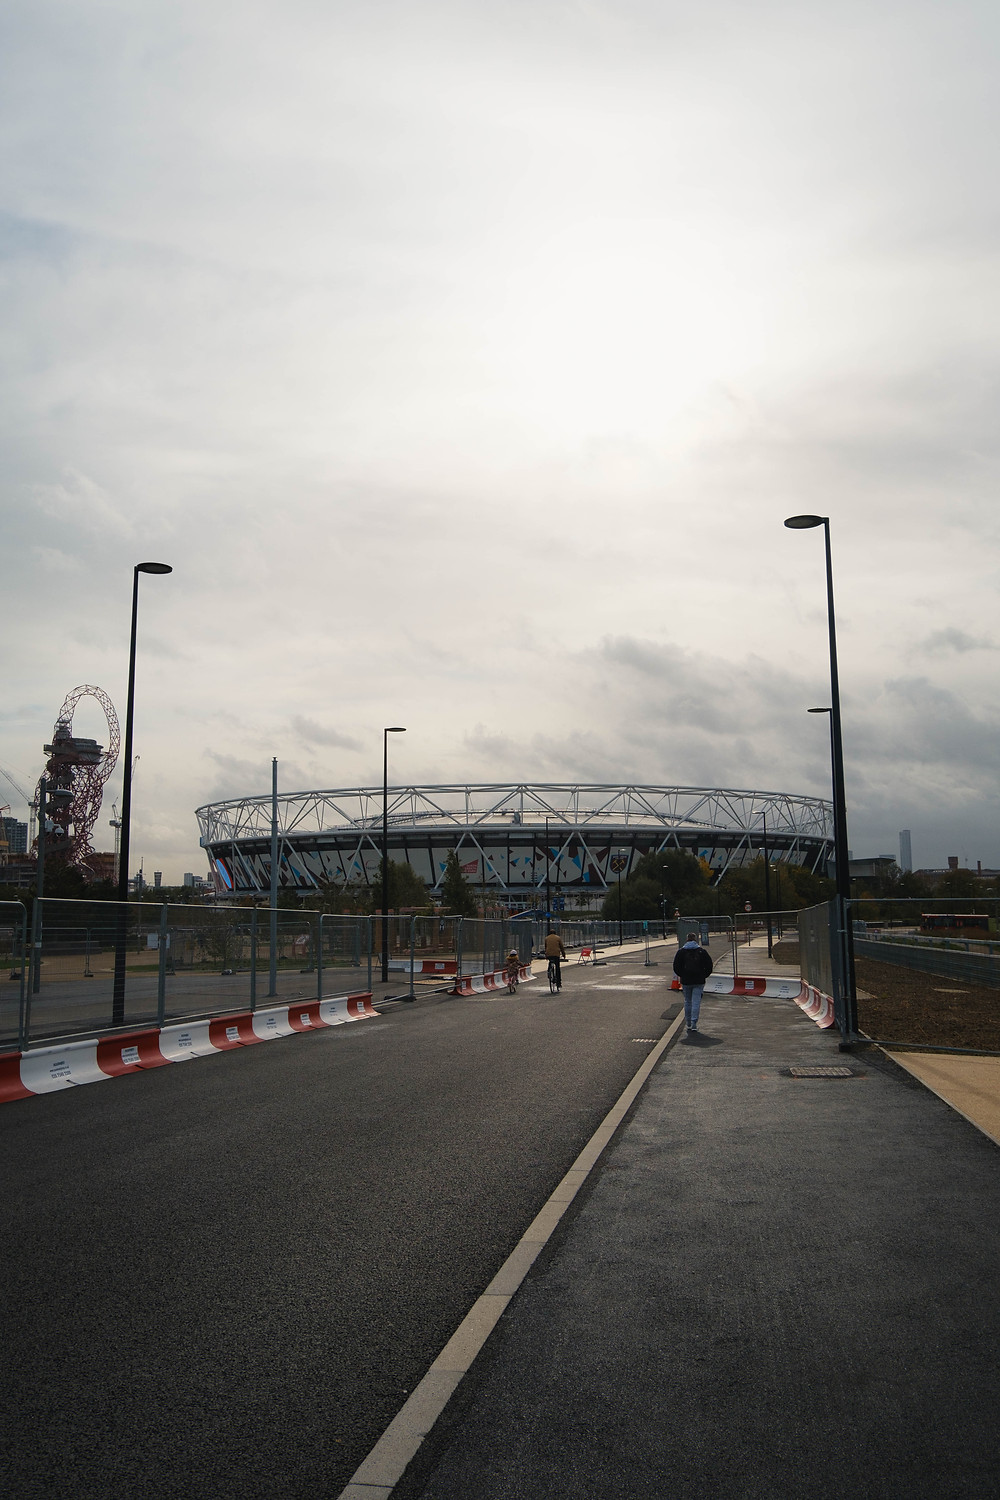 Photograph of the London Stadium in the Olympic Park Stratford